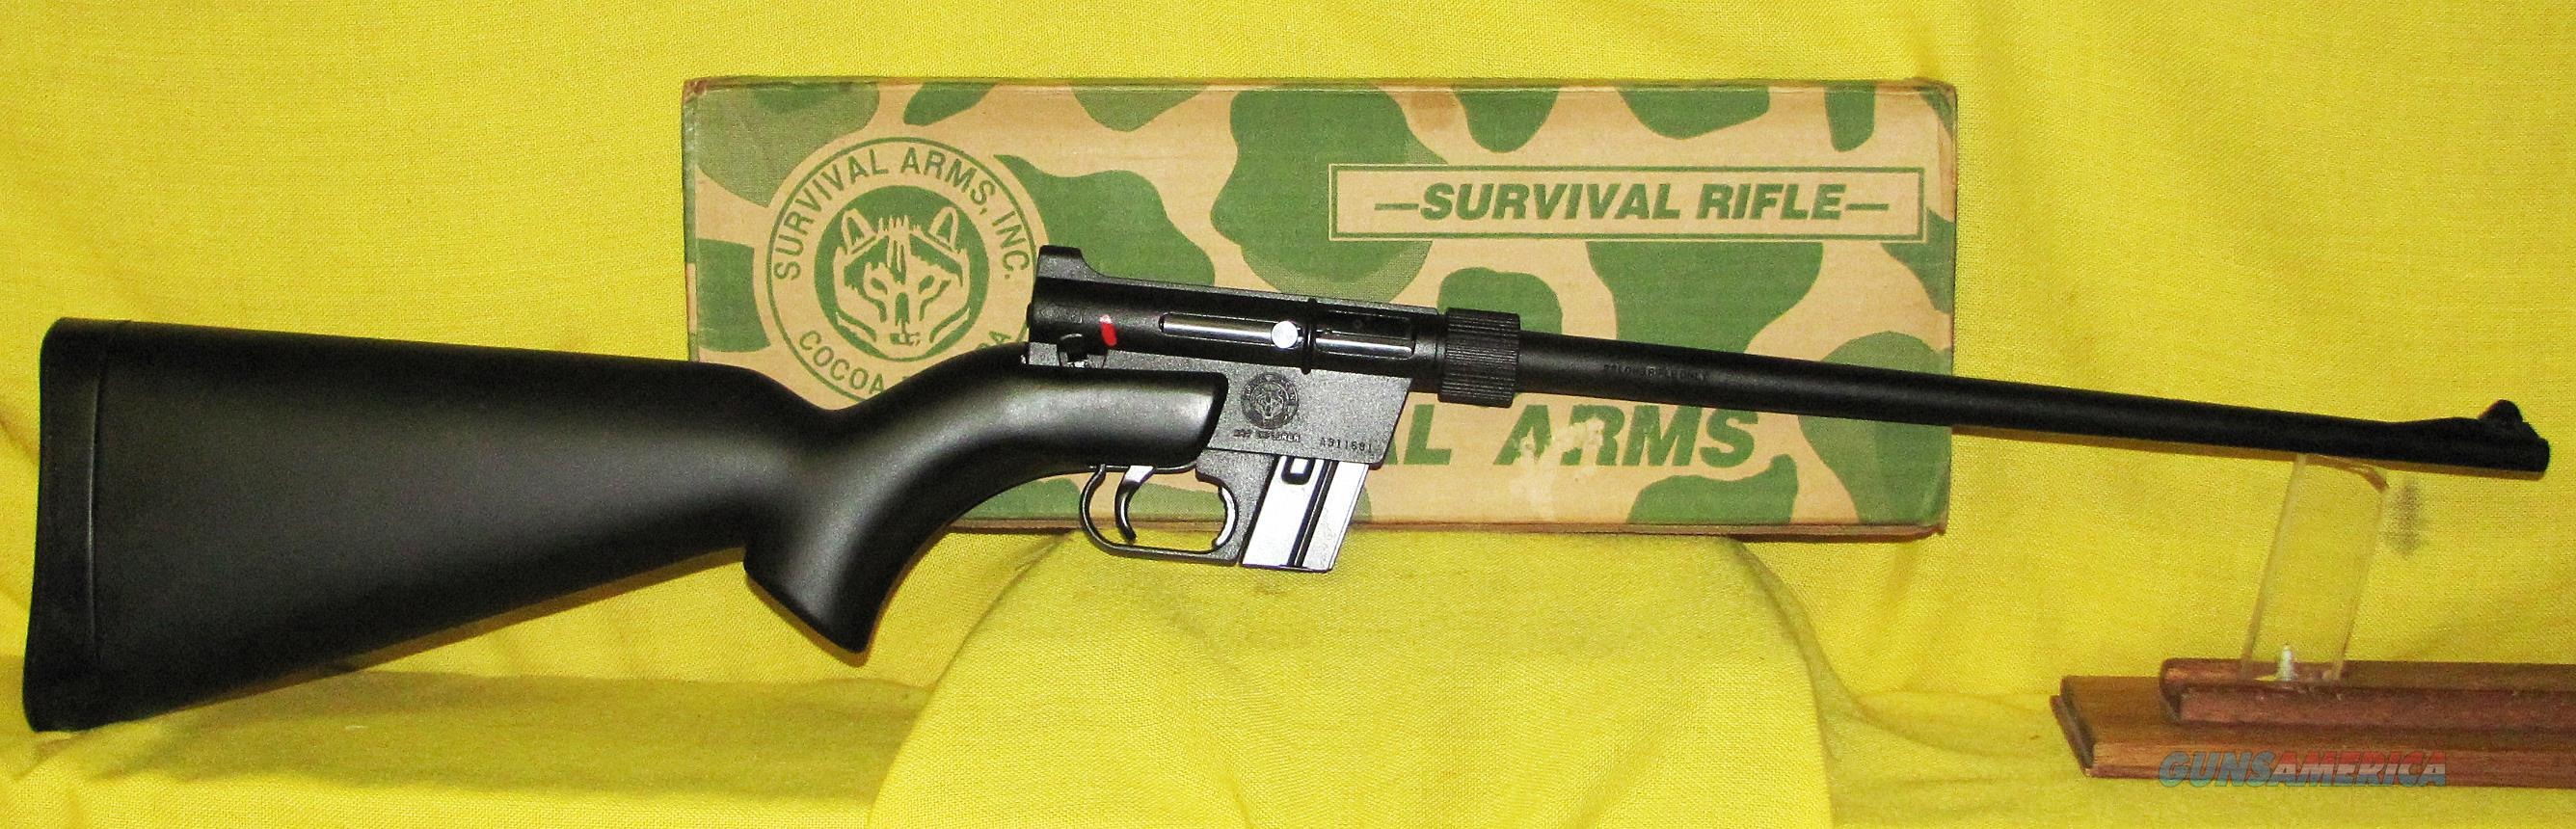 SURVIVAL ARMS AR-7 EXPLORER  Guns > Rifles > Charter Arms Rifles